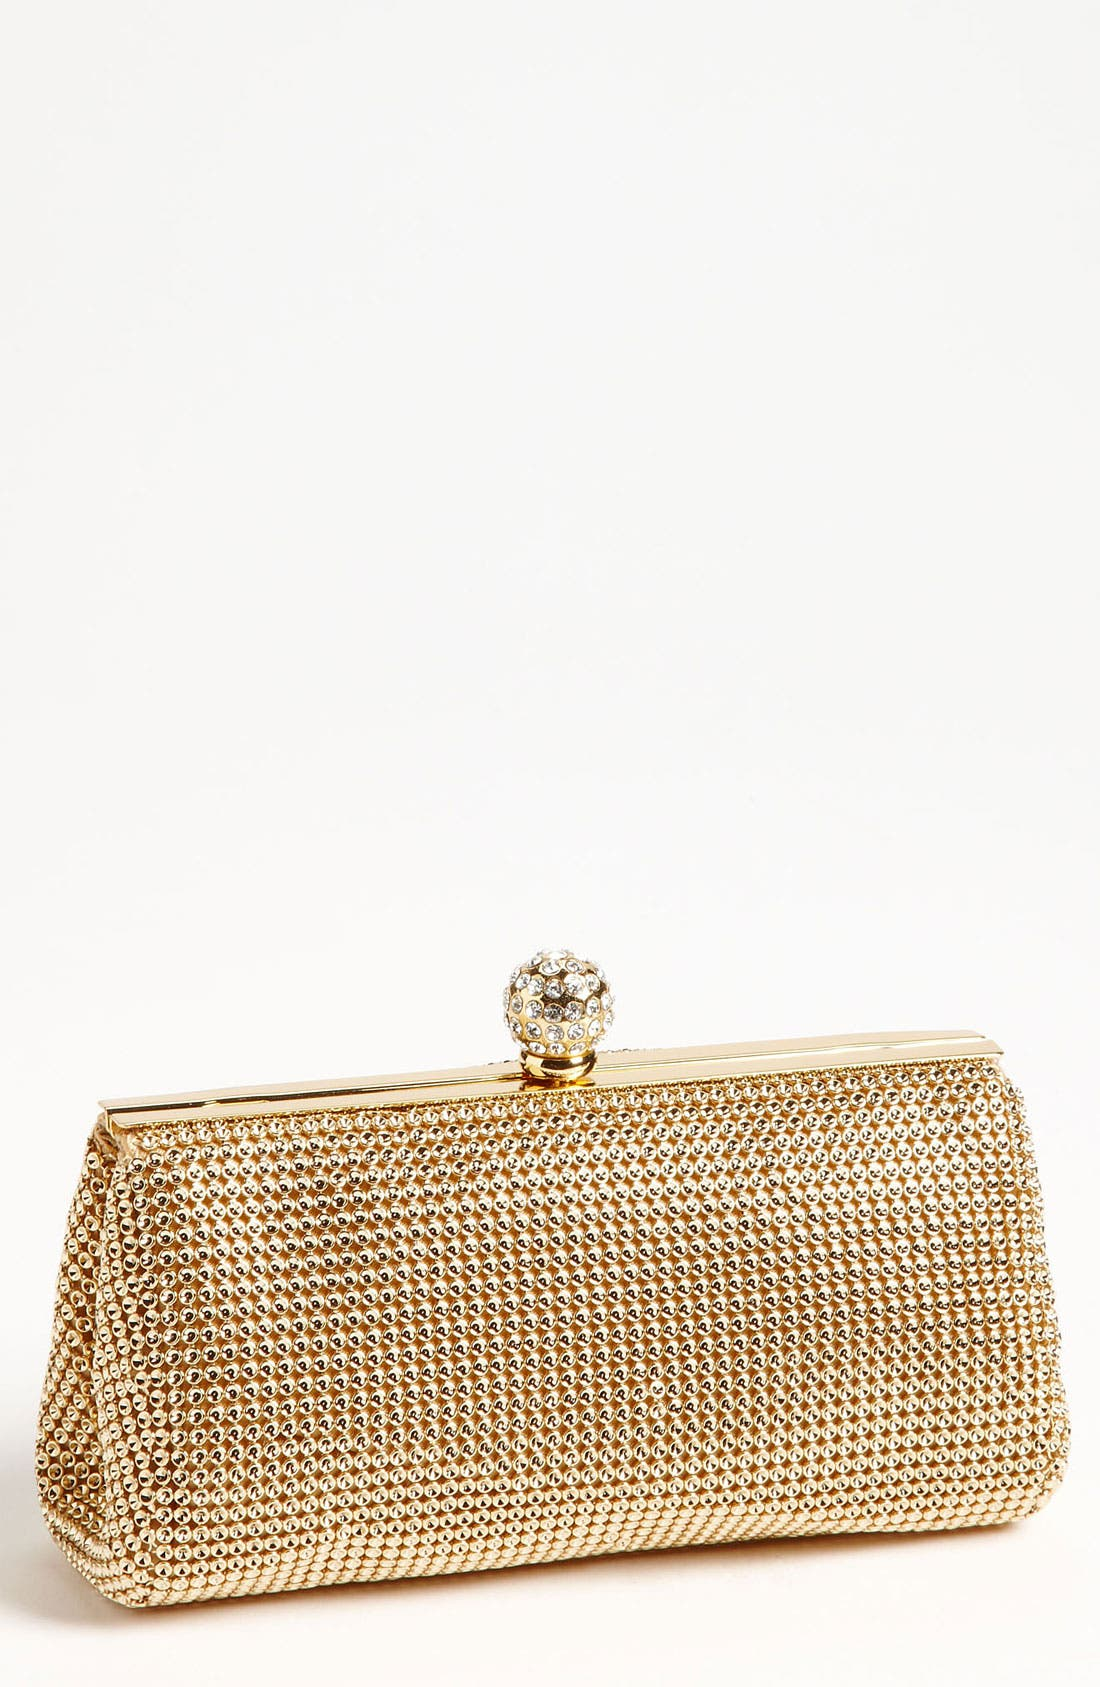 Alternate Image 1 Selected - Whiting & Davis 'Crystal' Mesh Clutch